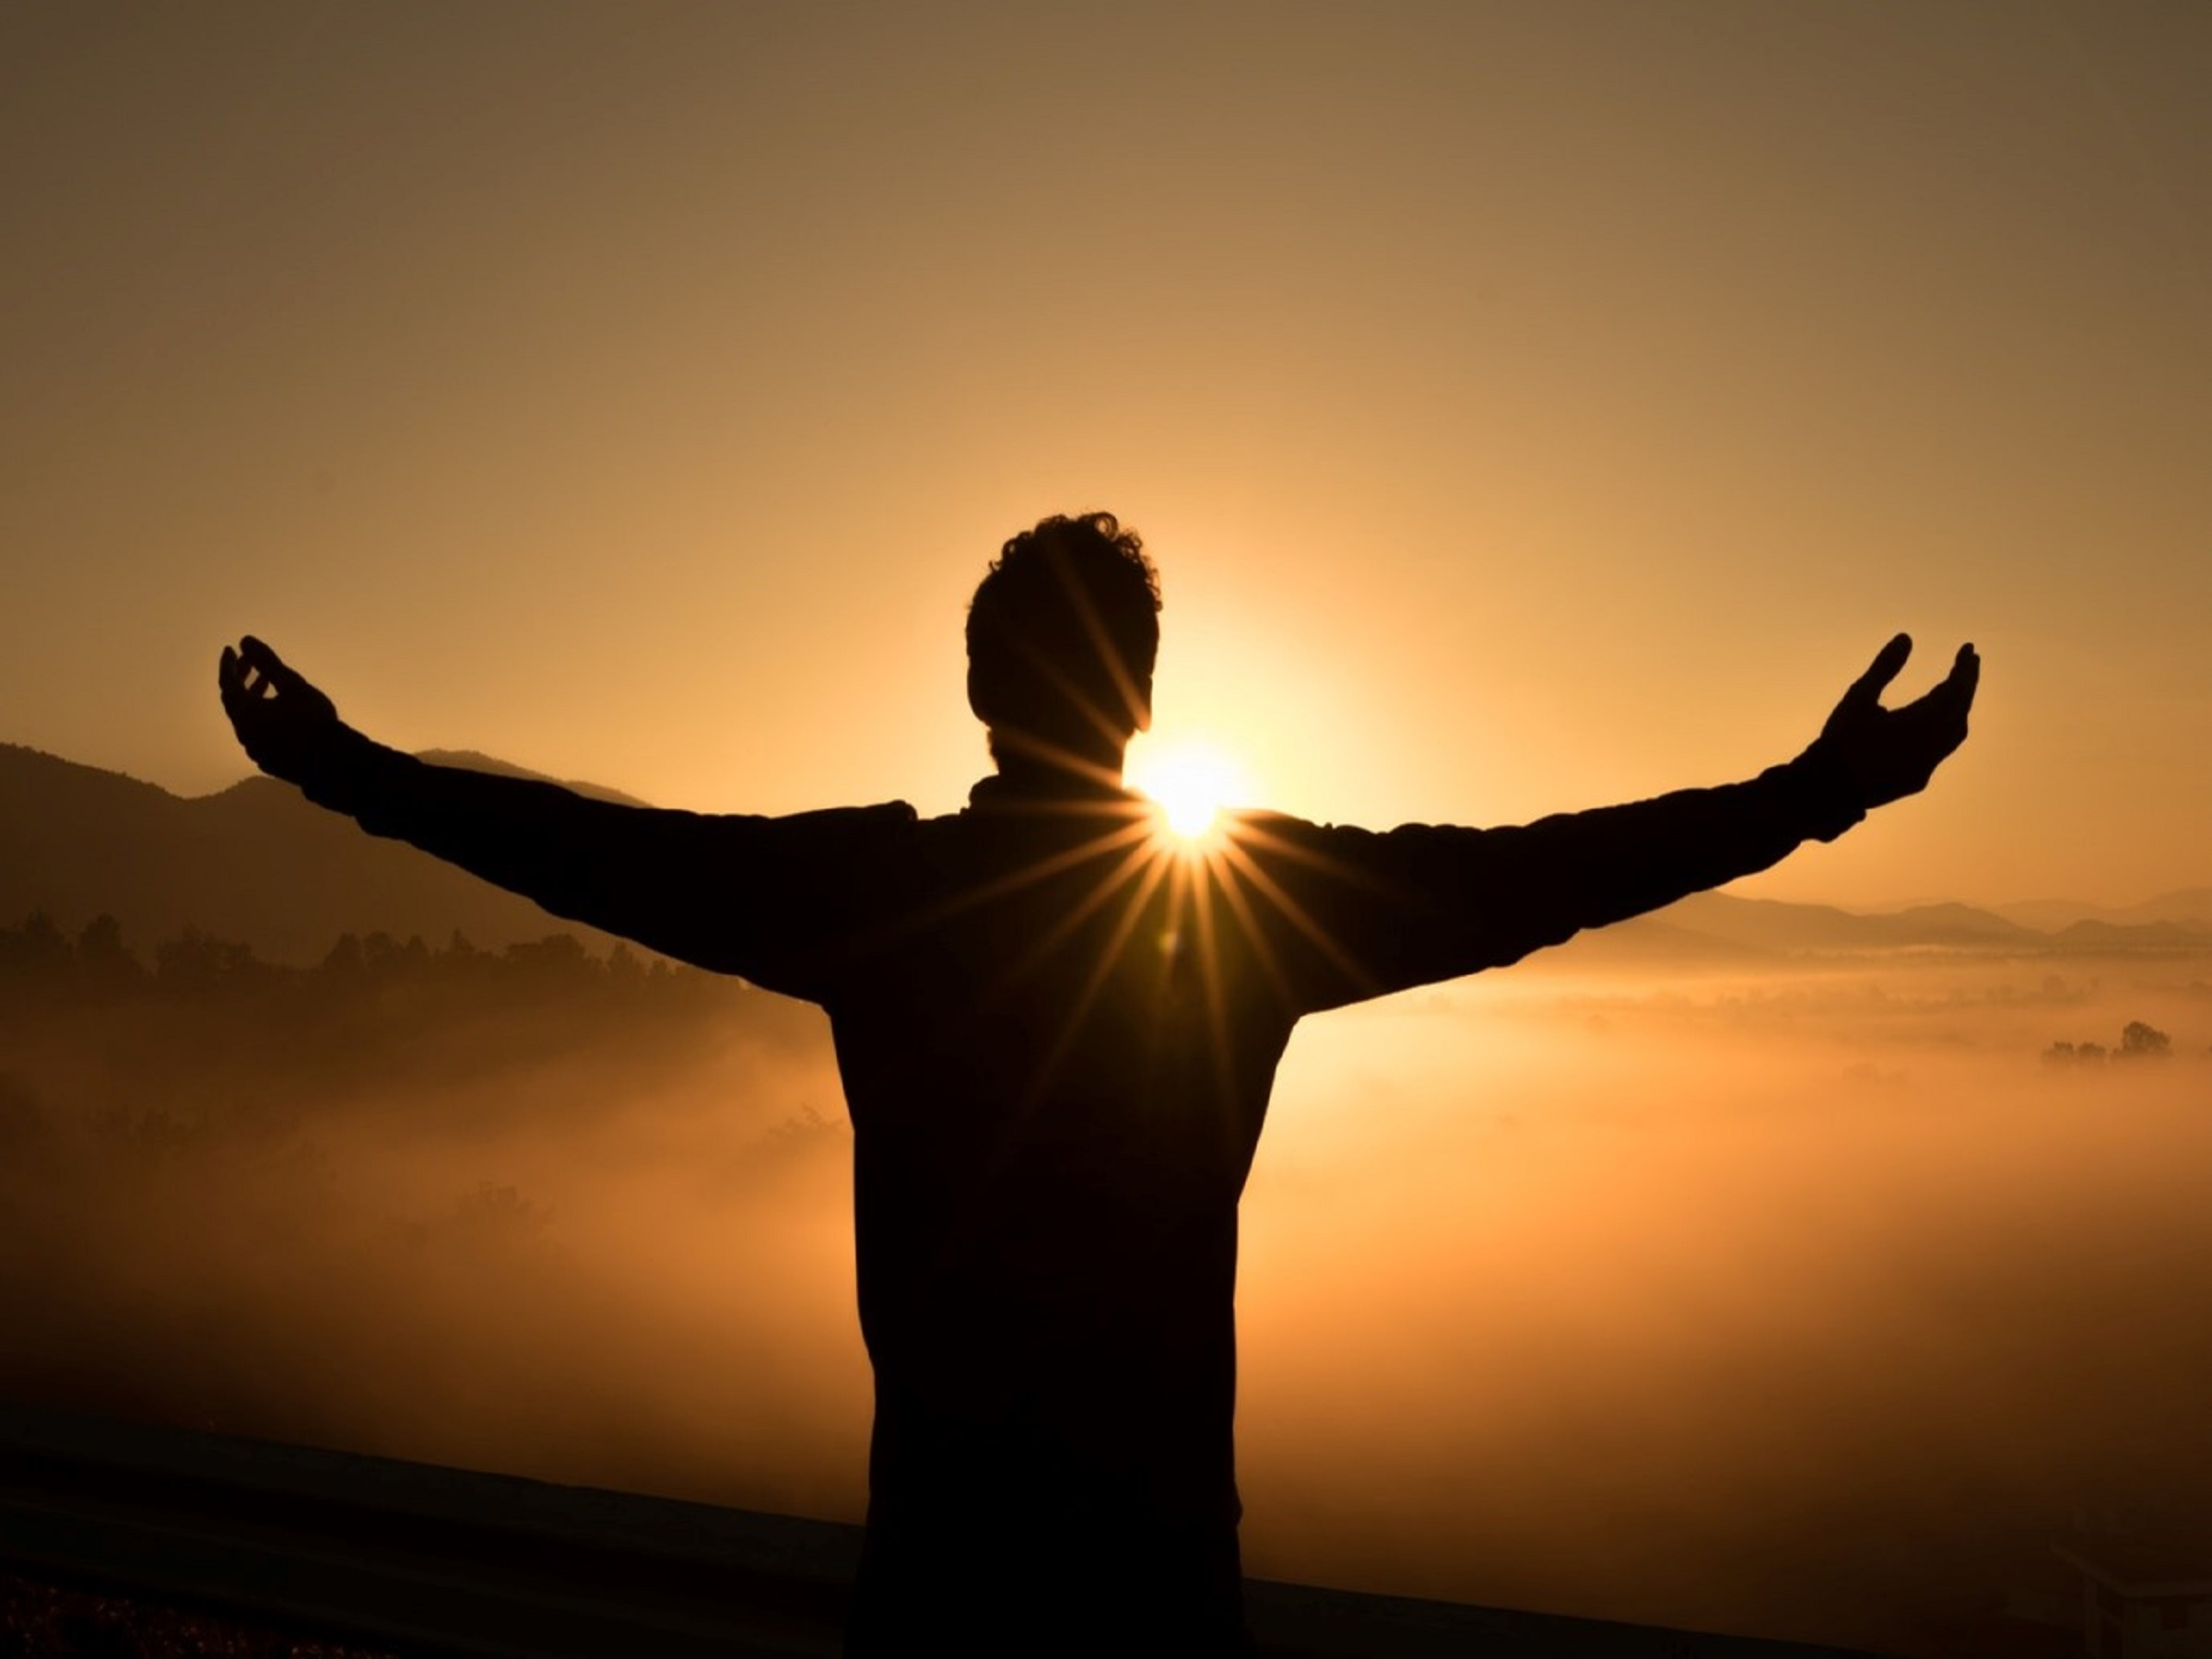 Silhouette of man in front of sunset with arms outstretched